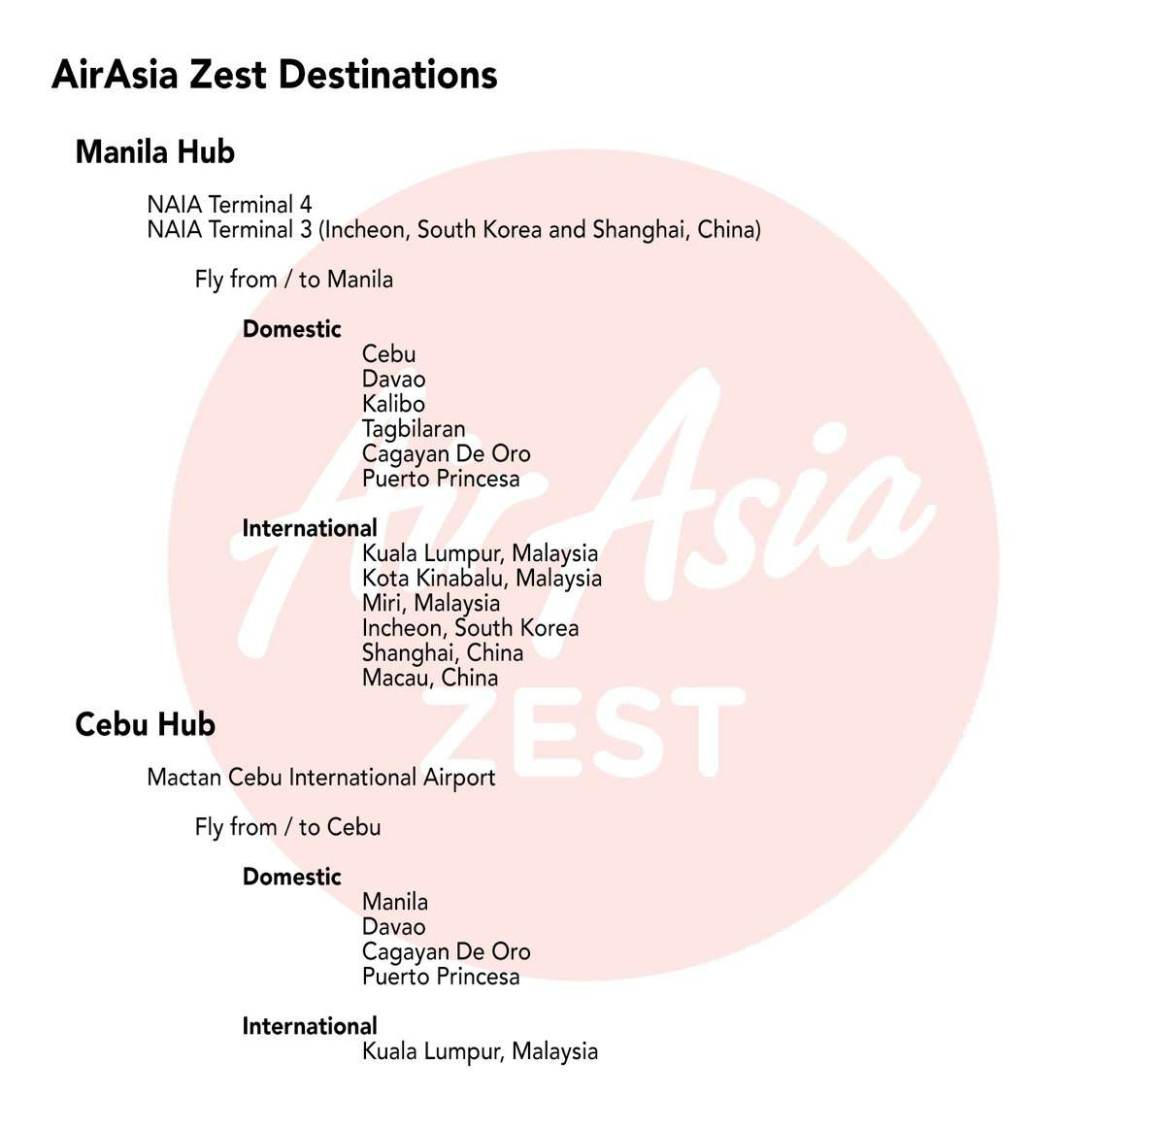 AirAsia Zest Destinations